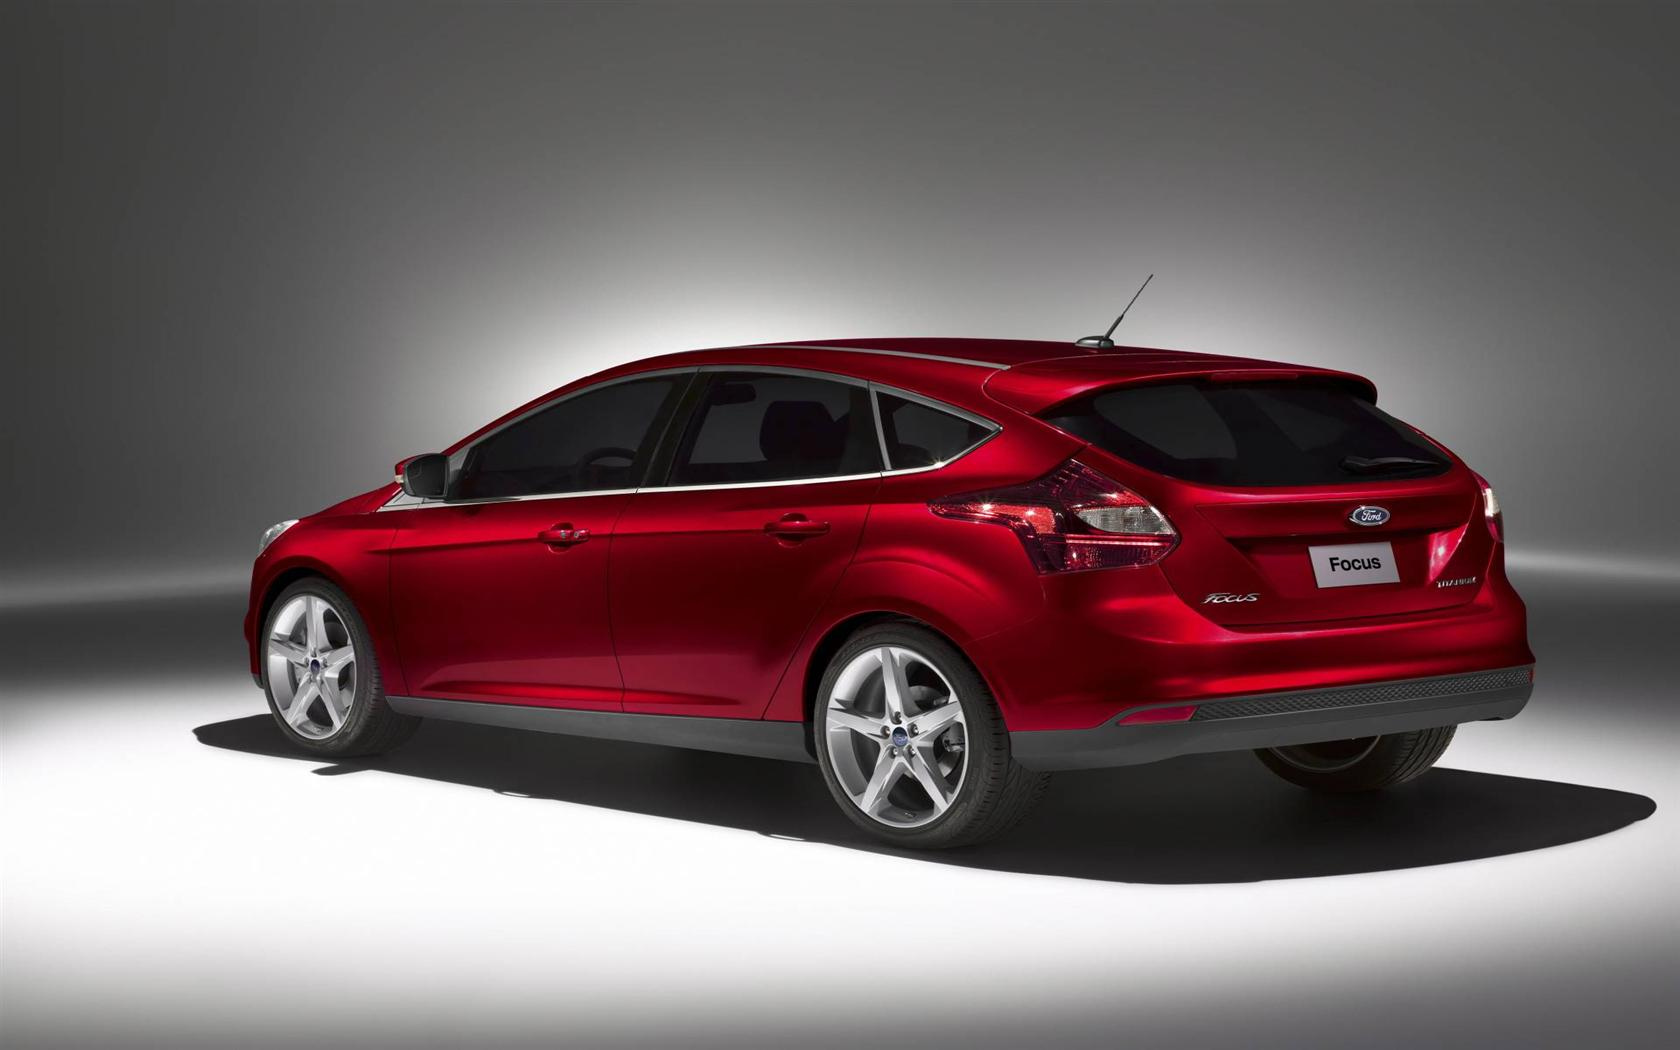 2013 Ford Focus Image. Photo 34 of 54